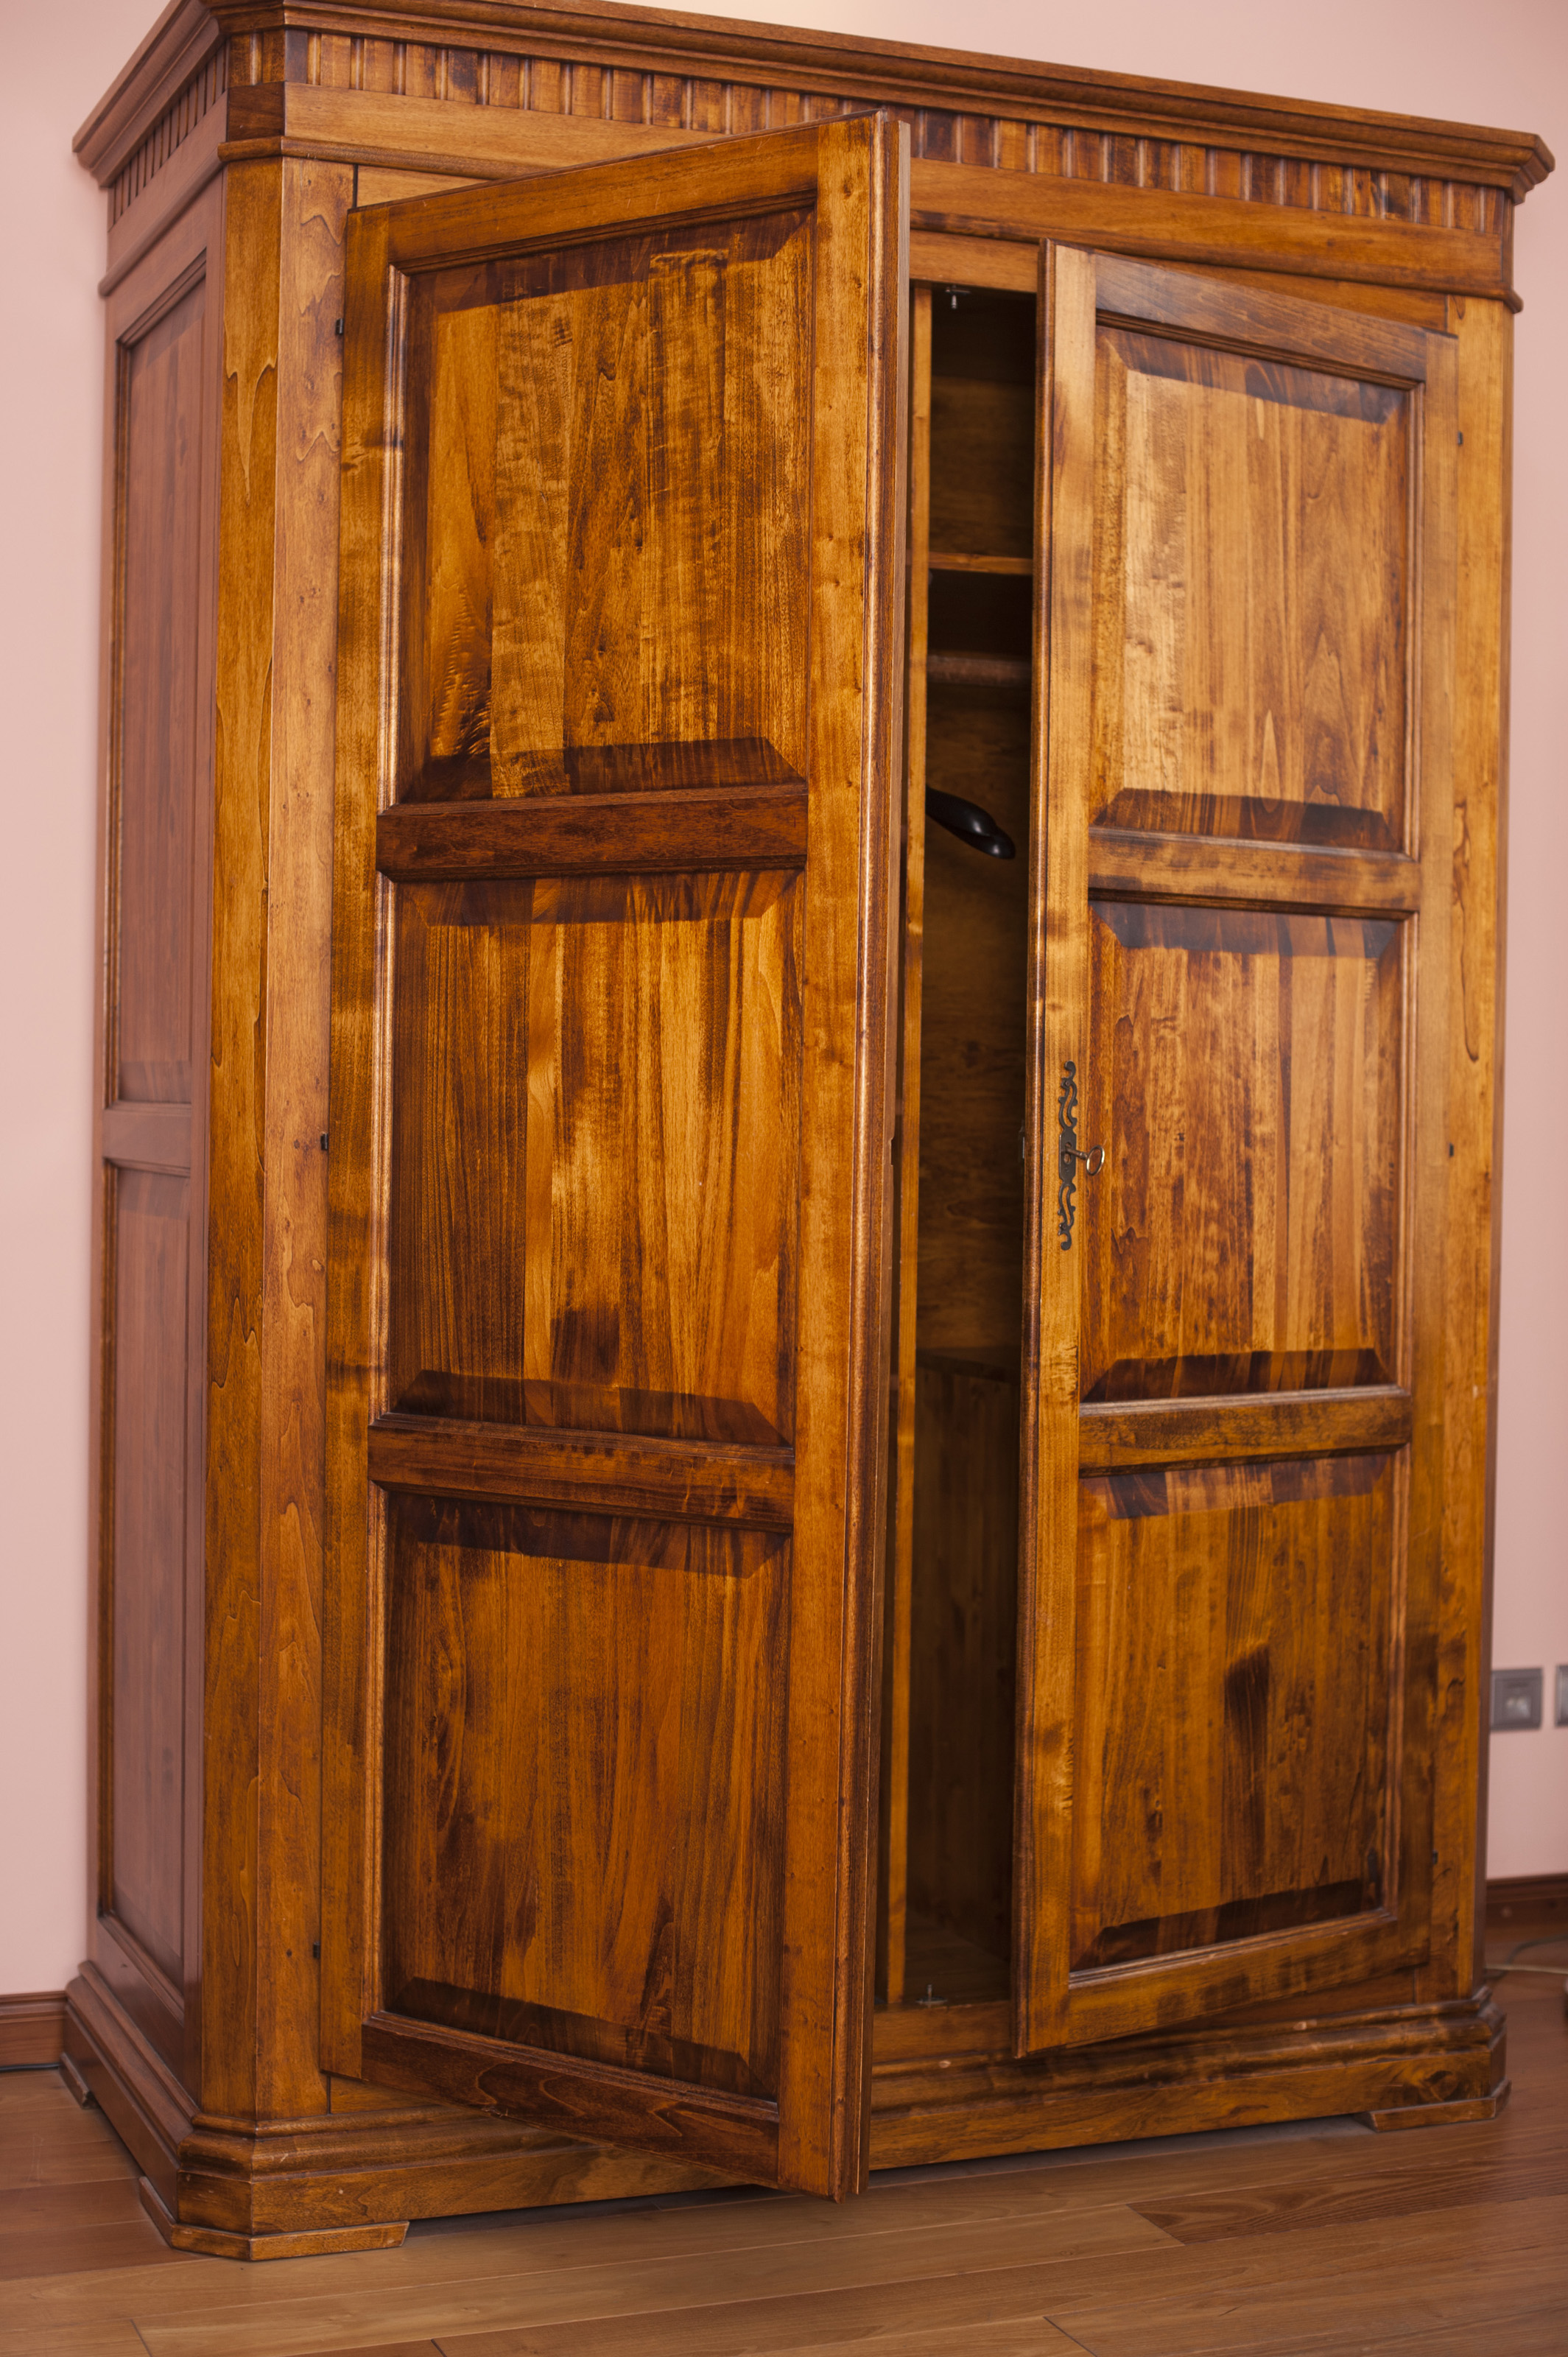 Free Stock Photo 8920 Old rustic wooden wardrobe